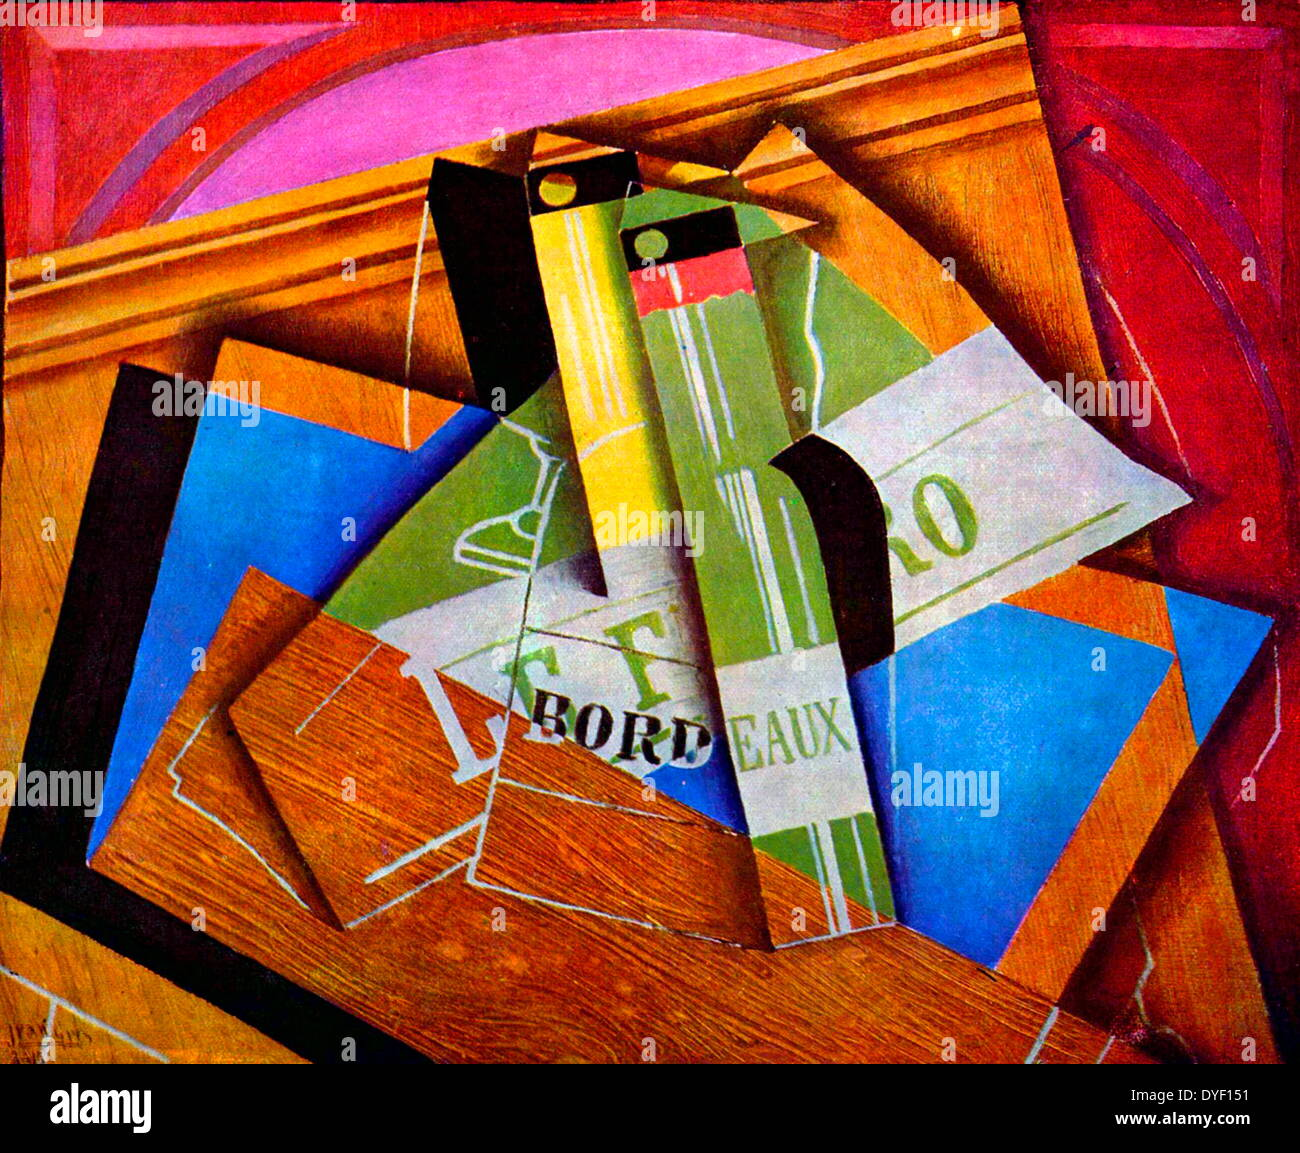 'Still life painting with Bordeux bottles' by Juan Gris. - Stock Image